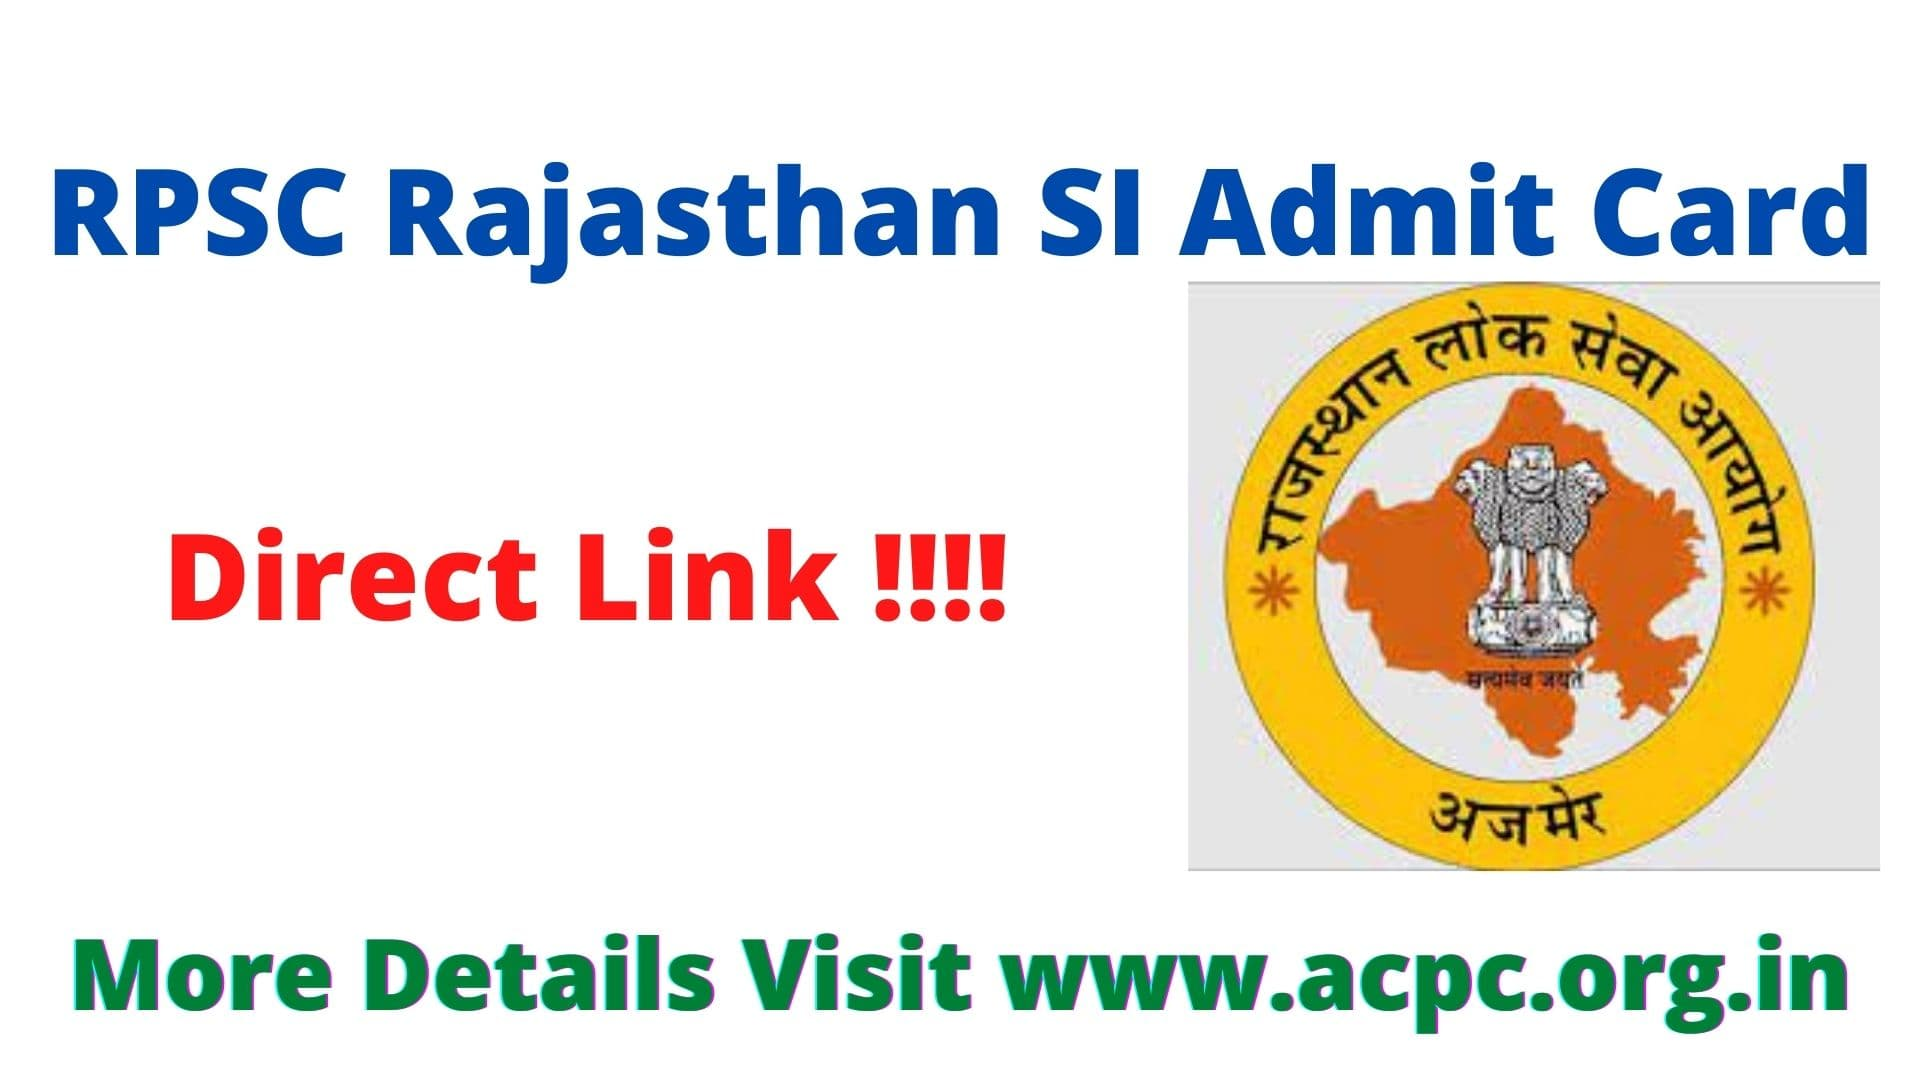 RPSC Rajasthan SI Admit Card 2021 Download Link, Exam Date, Call Letter